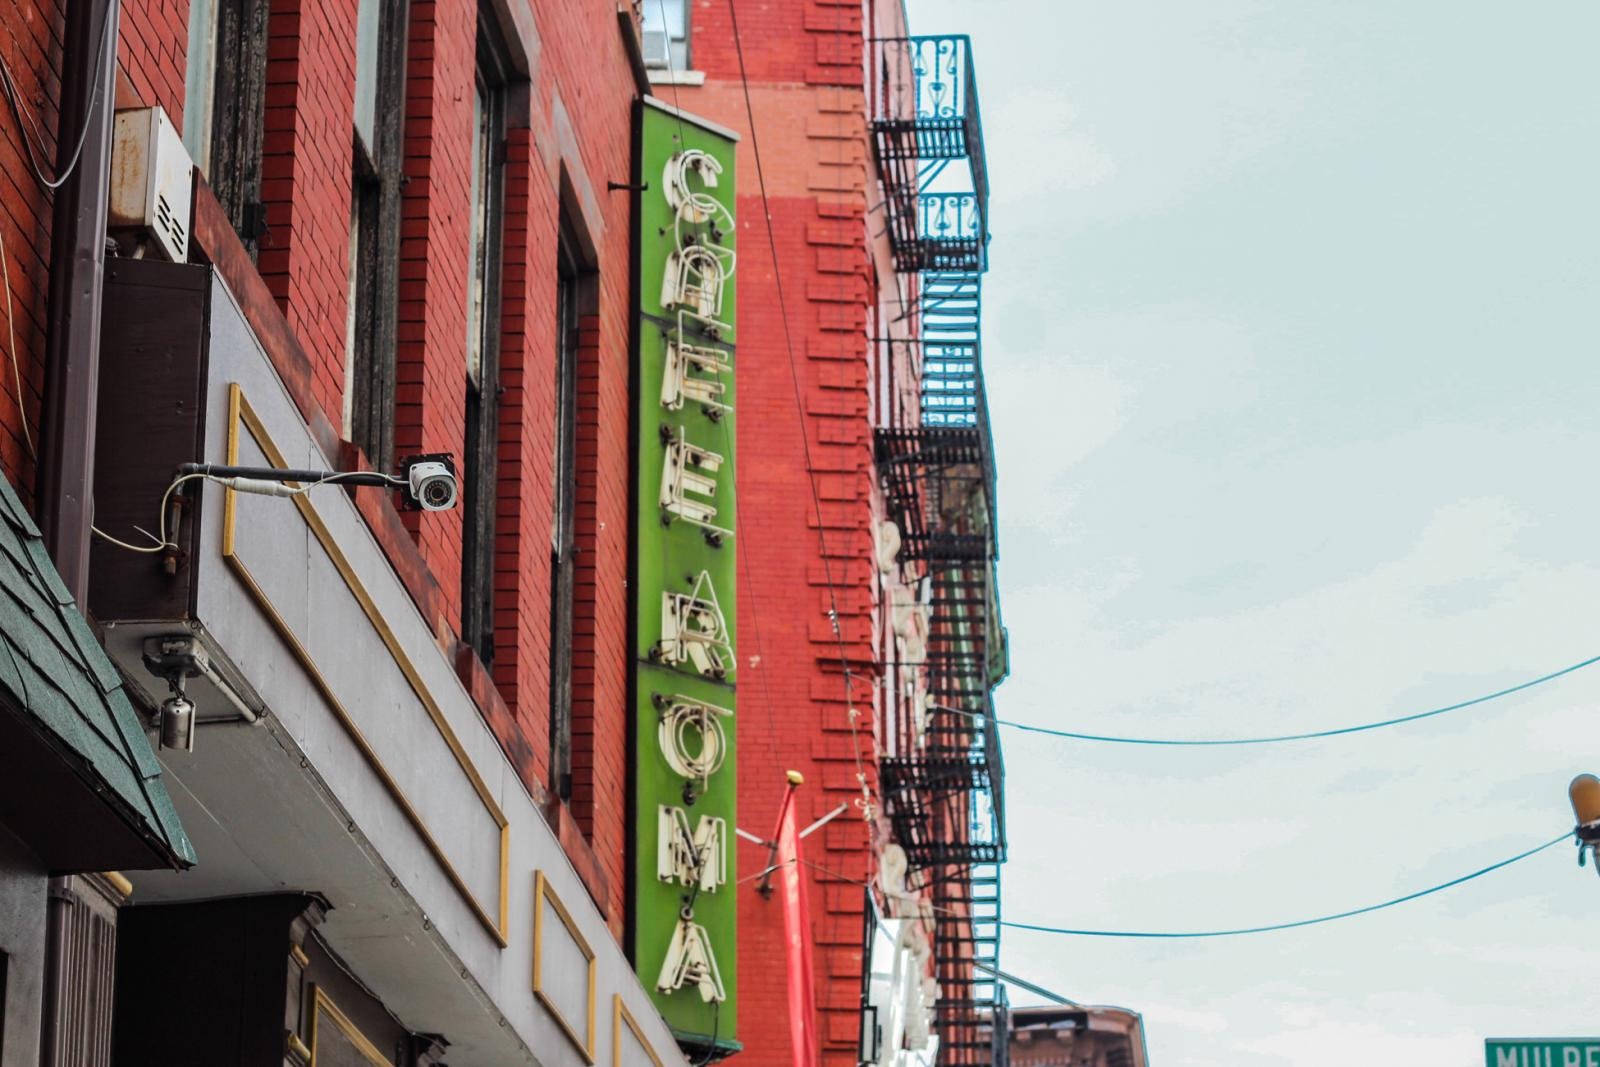 Things to do in Little Italy NYC